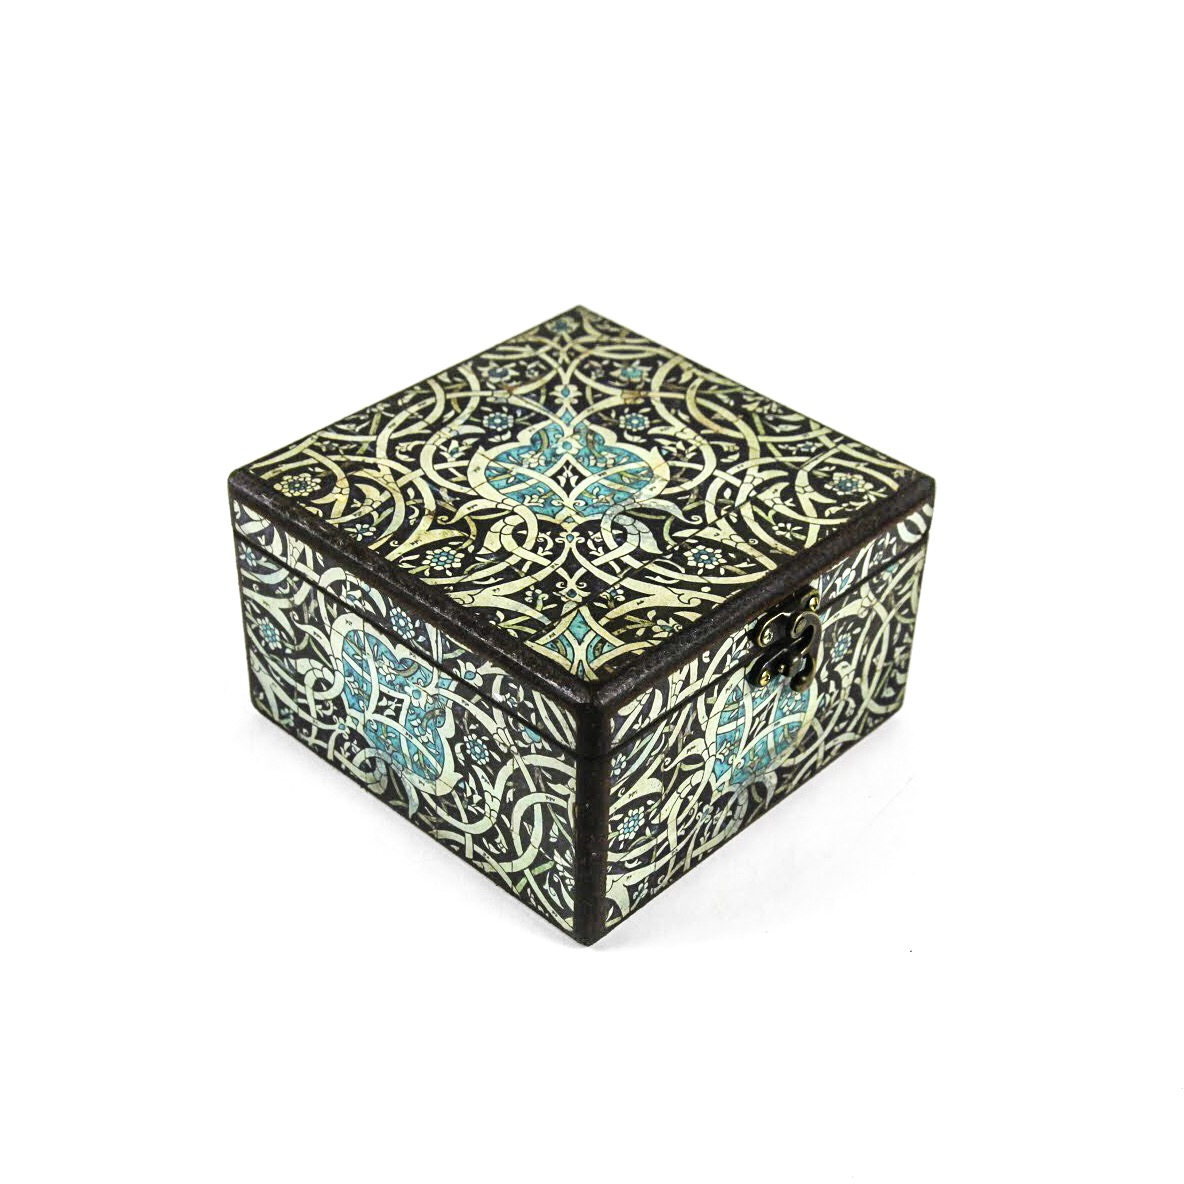 Wooden tea box with Iranian tile patterns code 08 ( available in 3 sizes)